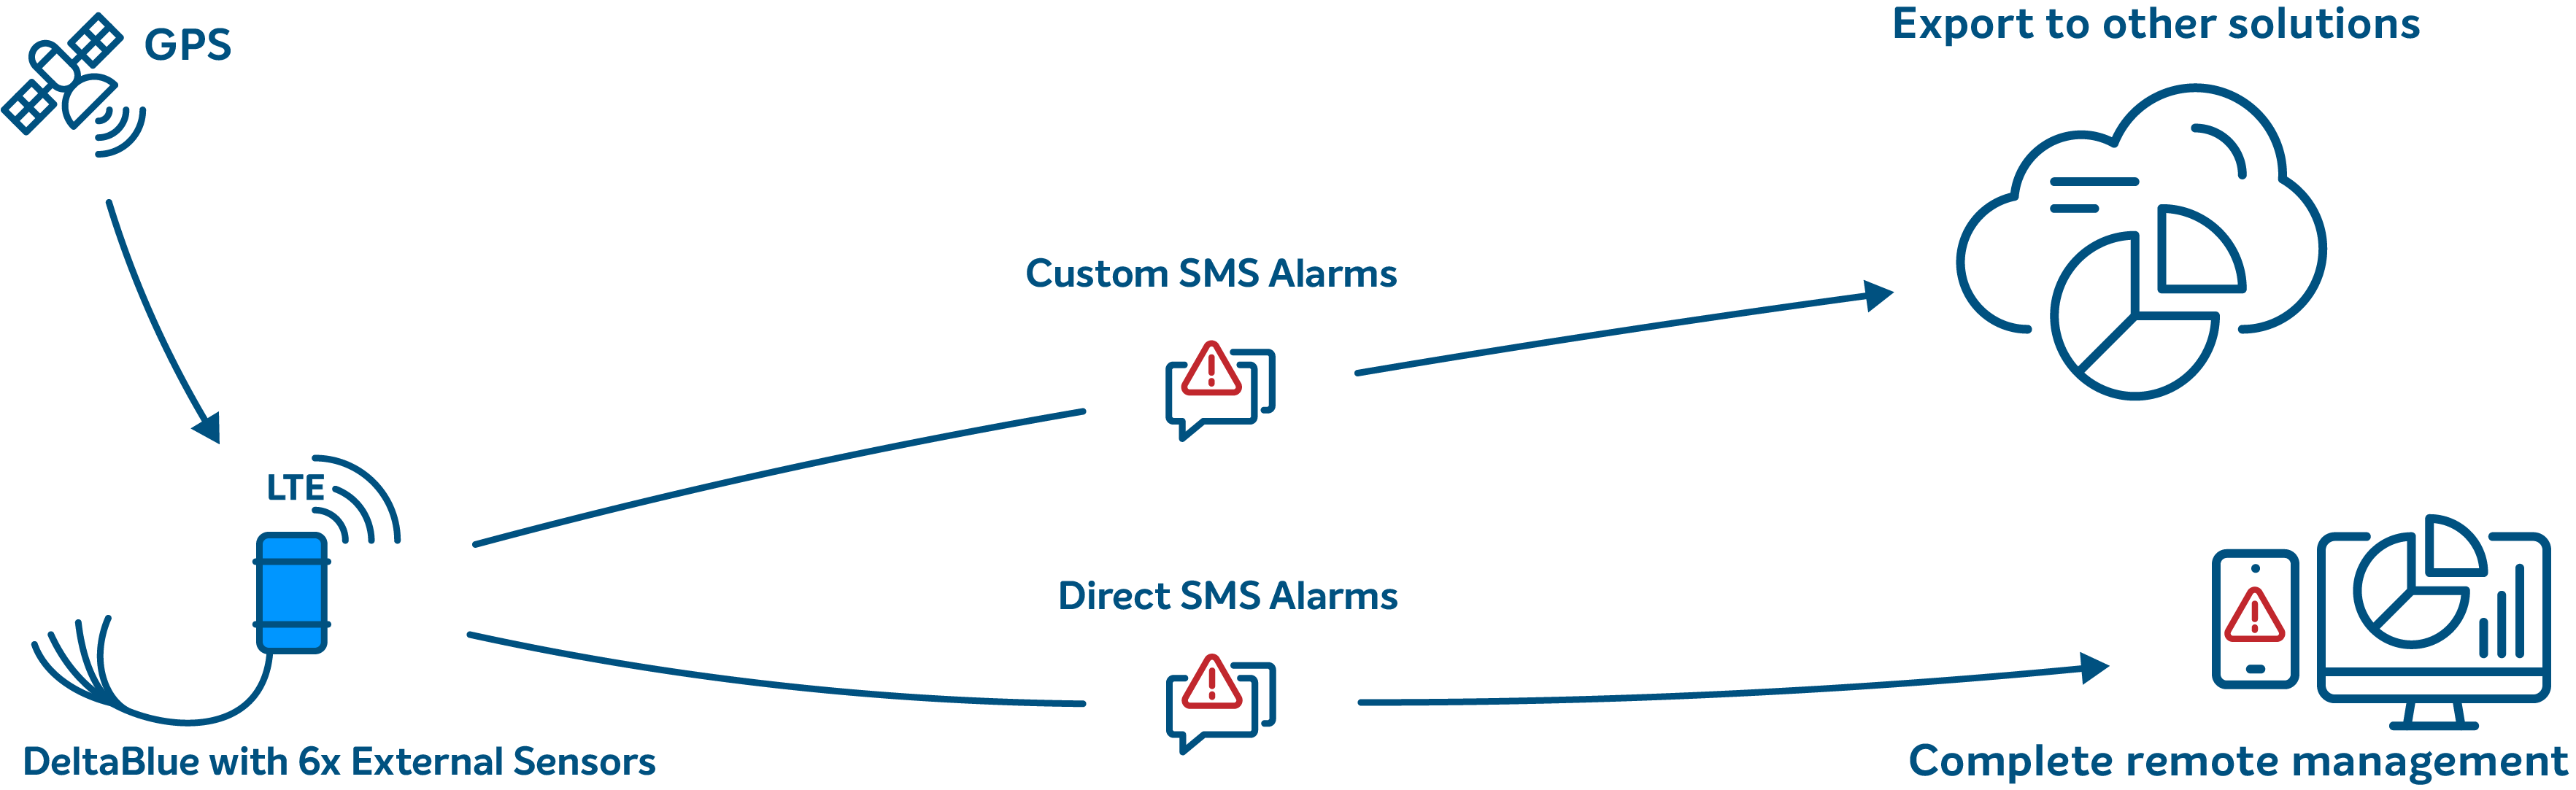 Graphic explanation of DeltaBlue SMS Alarm dialing